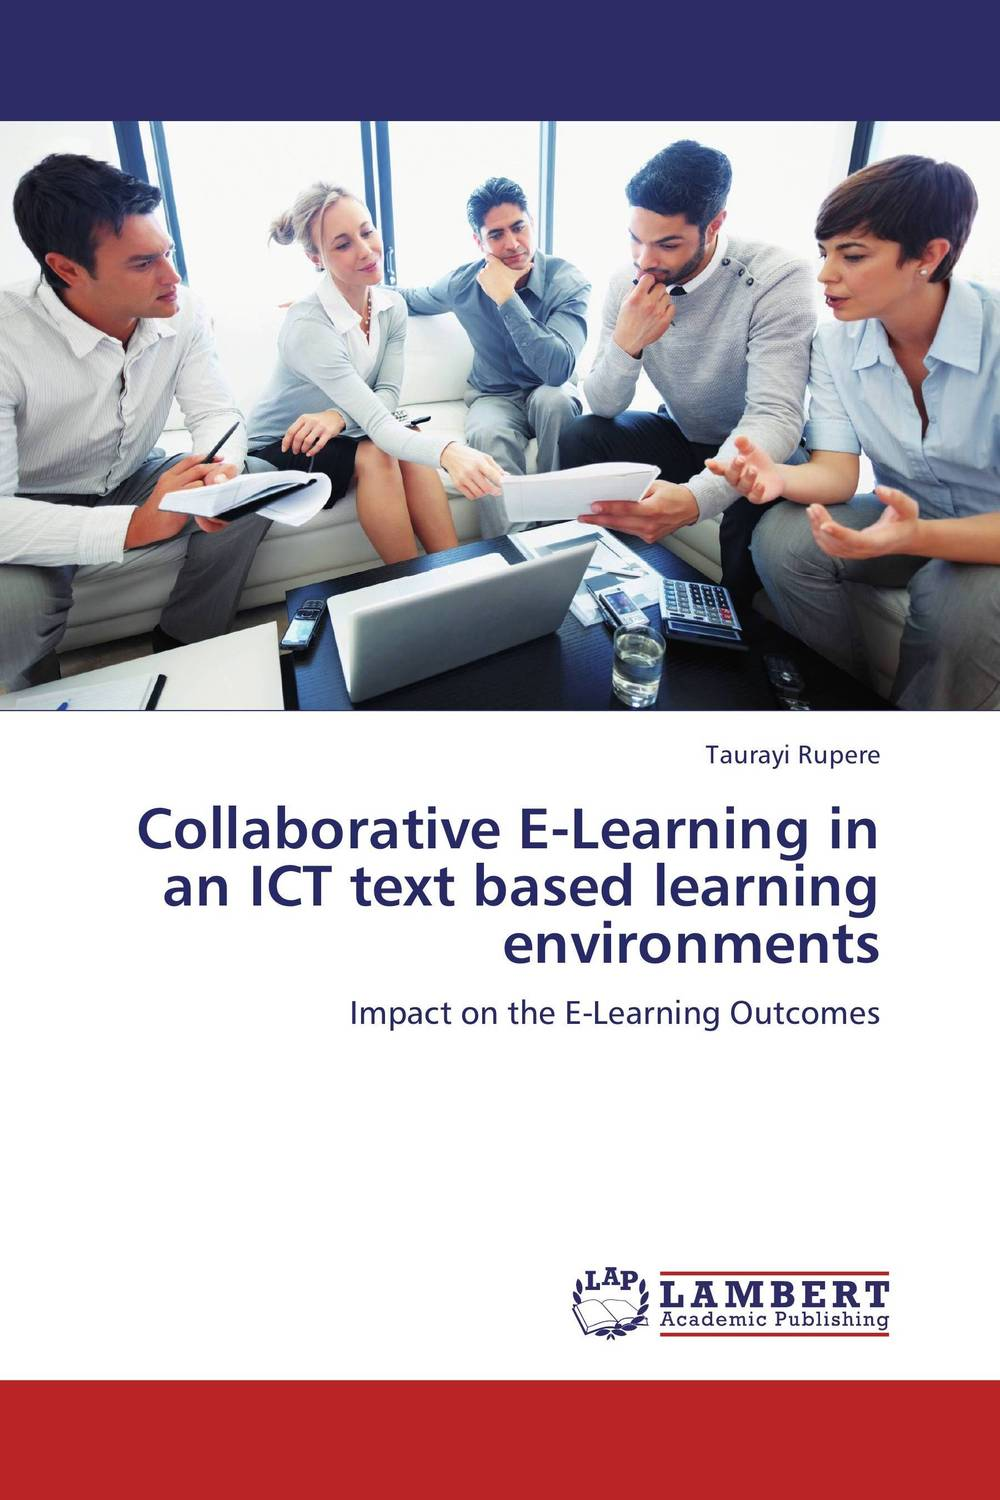 Collaborative E-Learning in an ICT text based learning environments pso based evolutionary learning